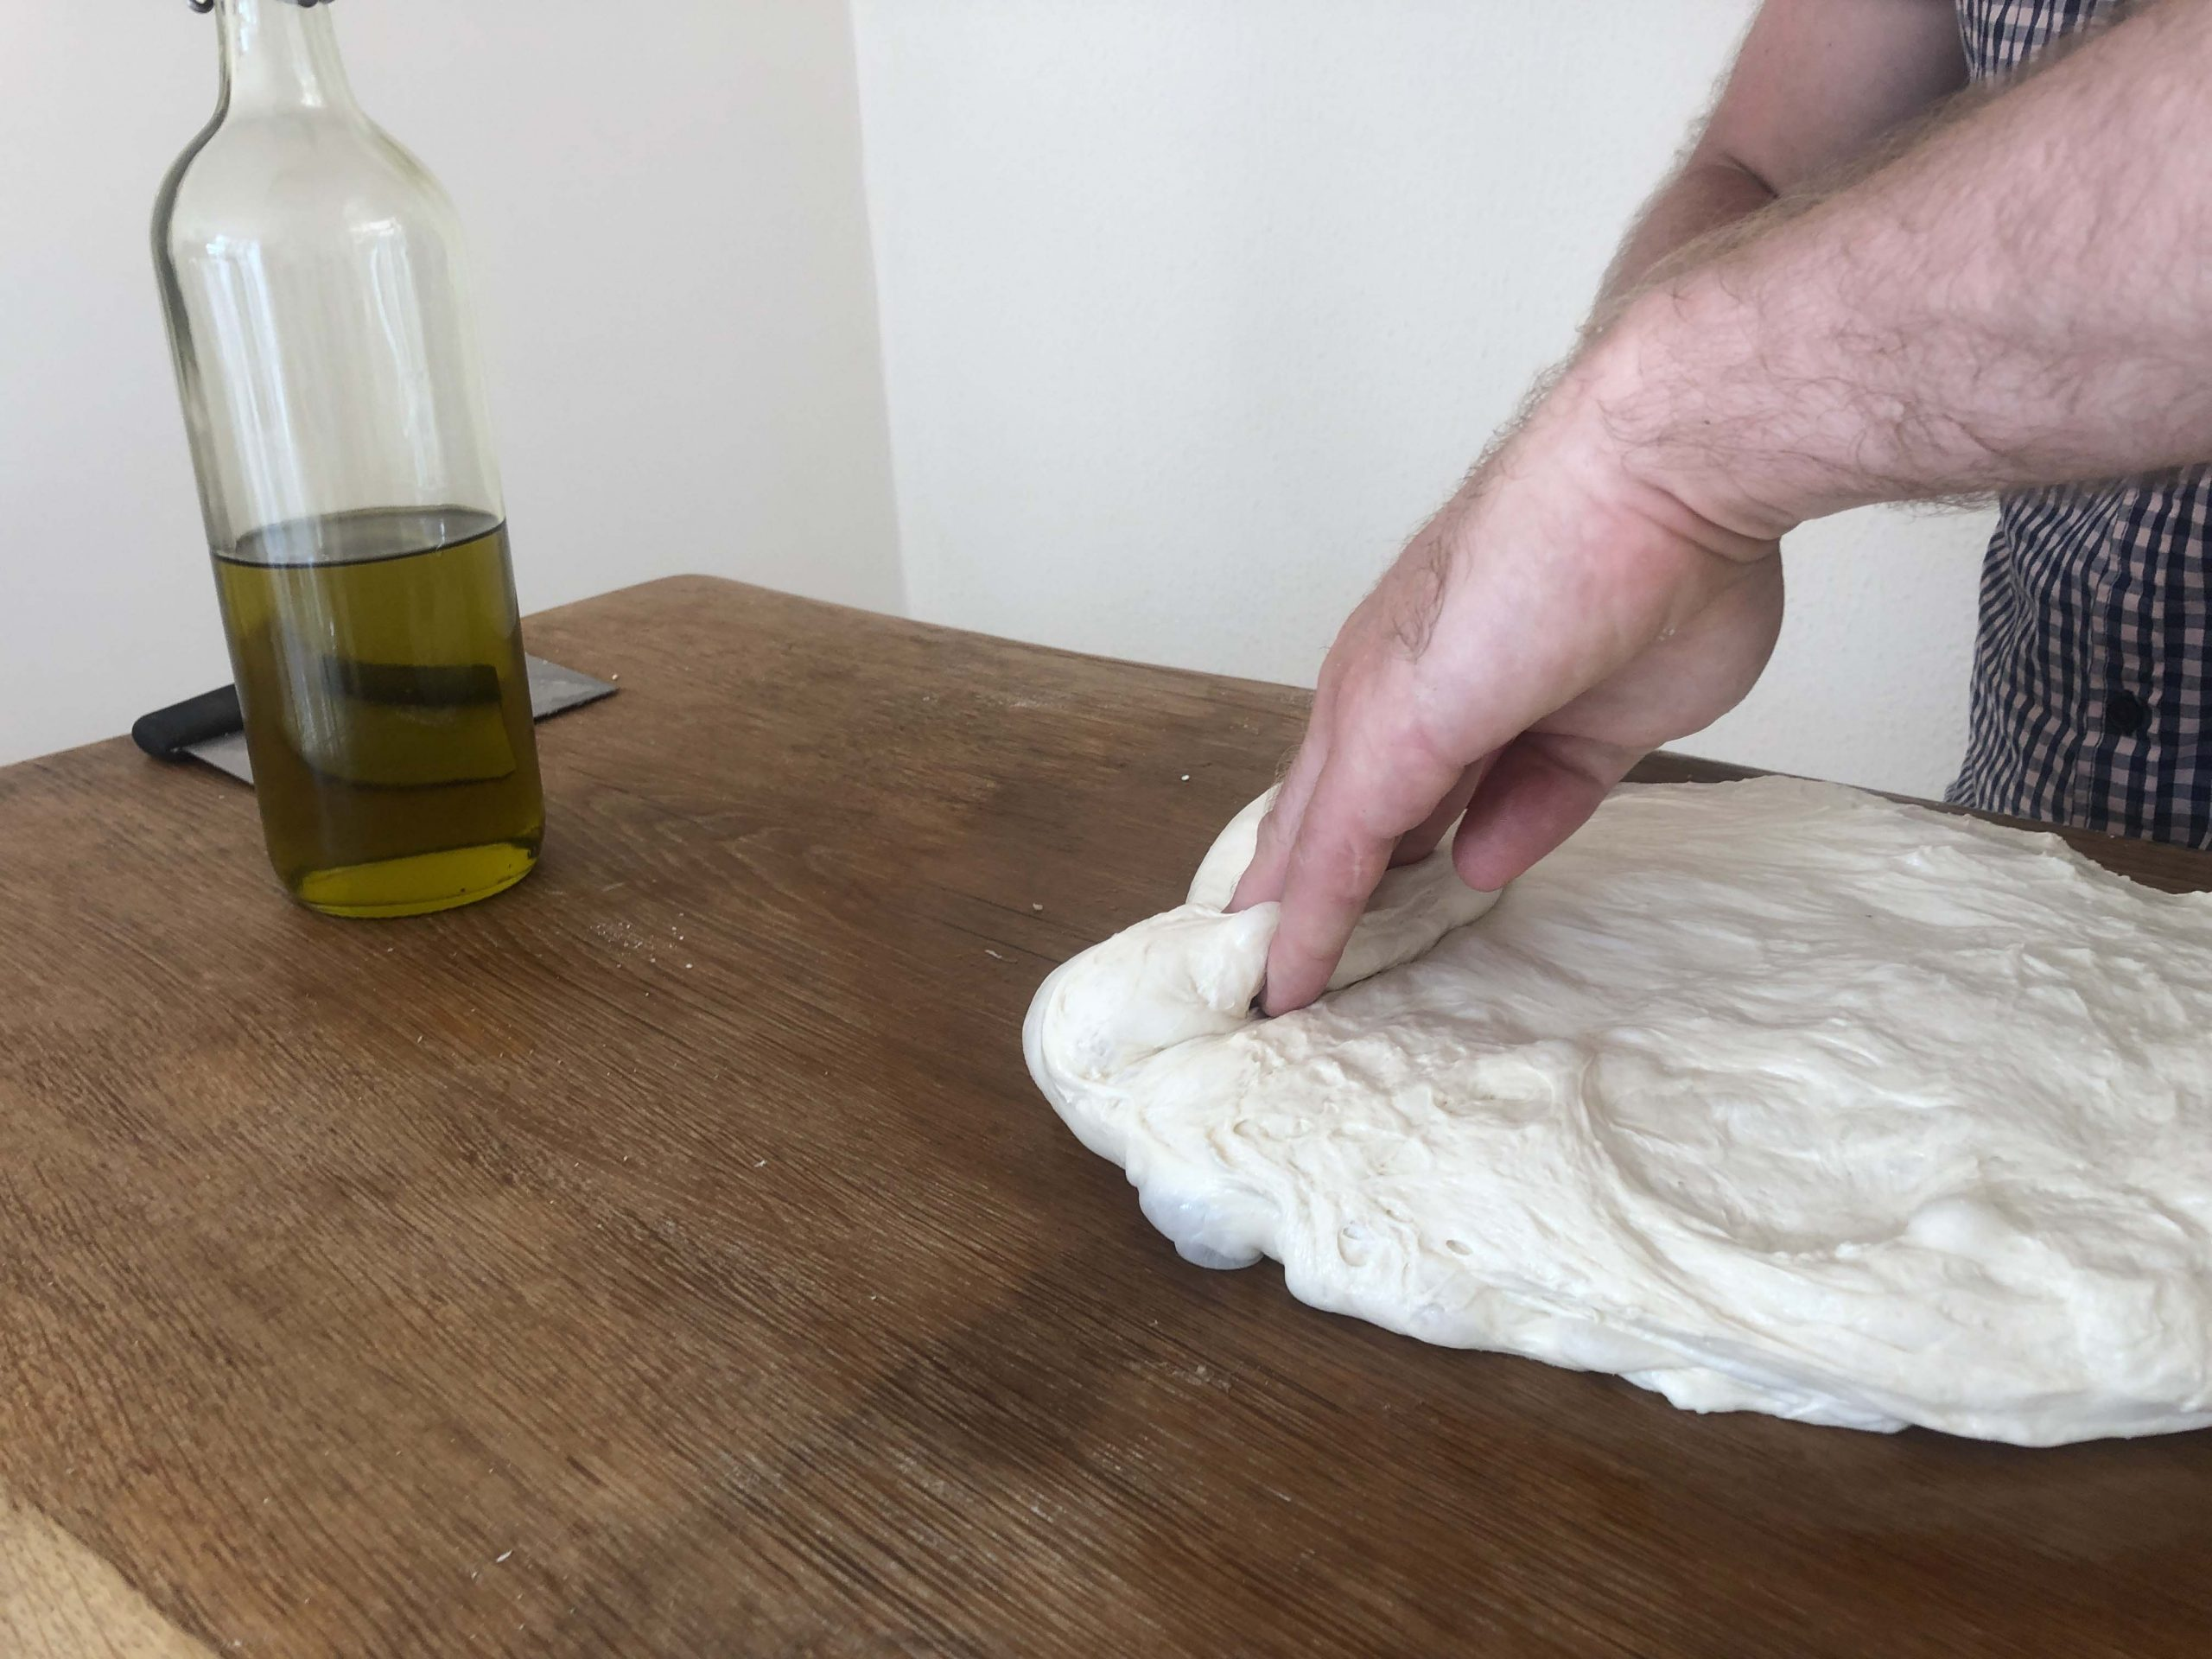 fold the dough over at a third